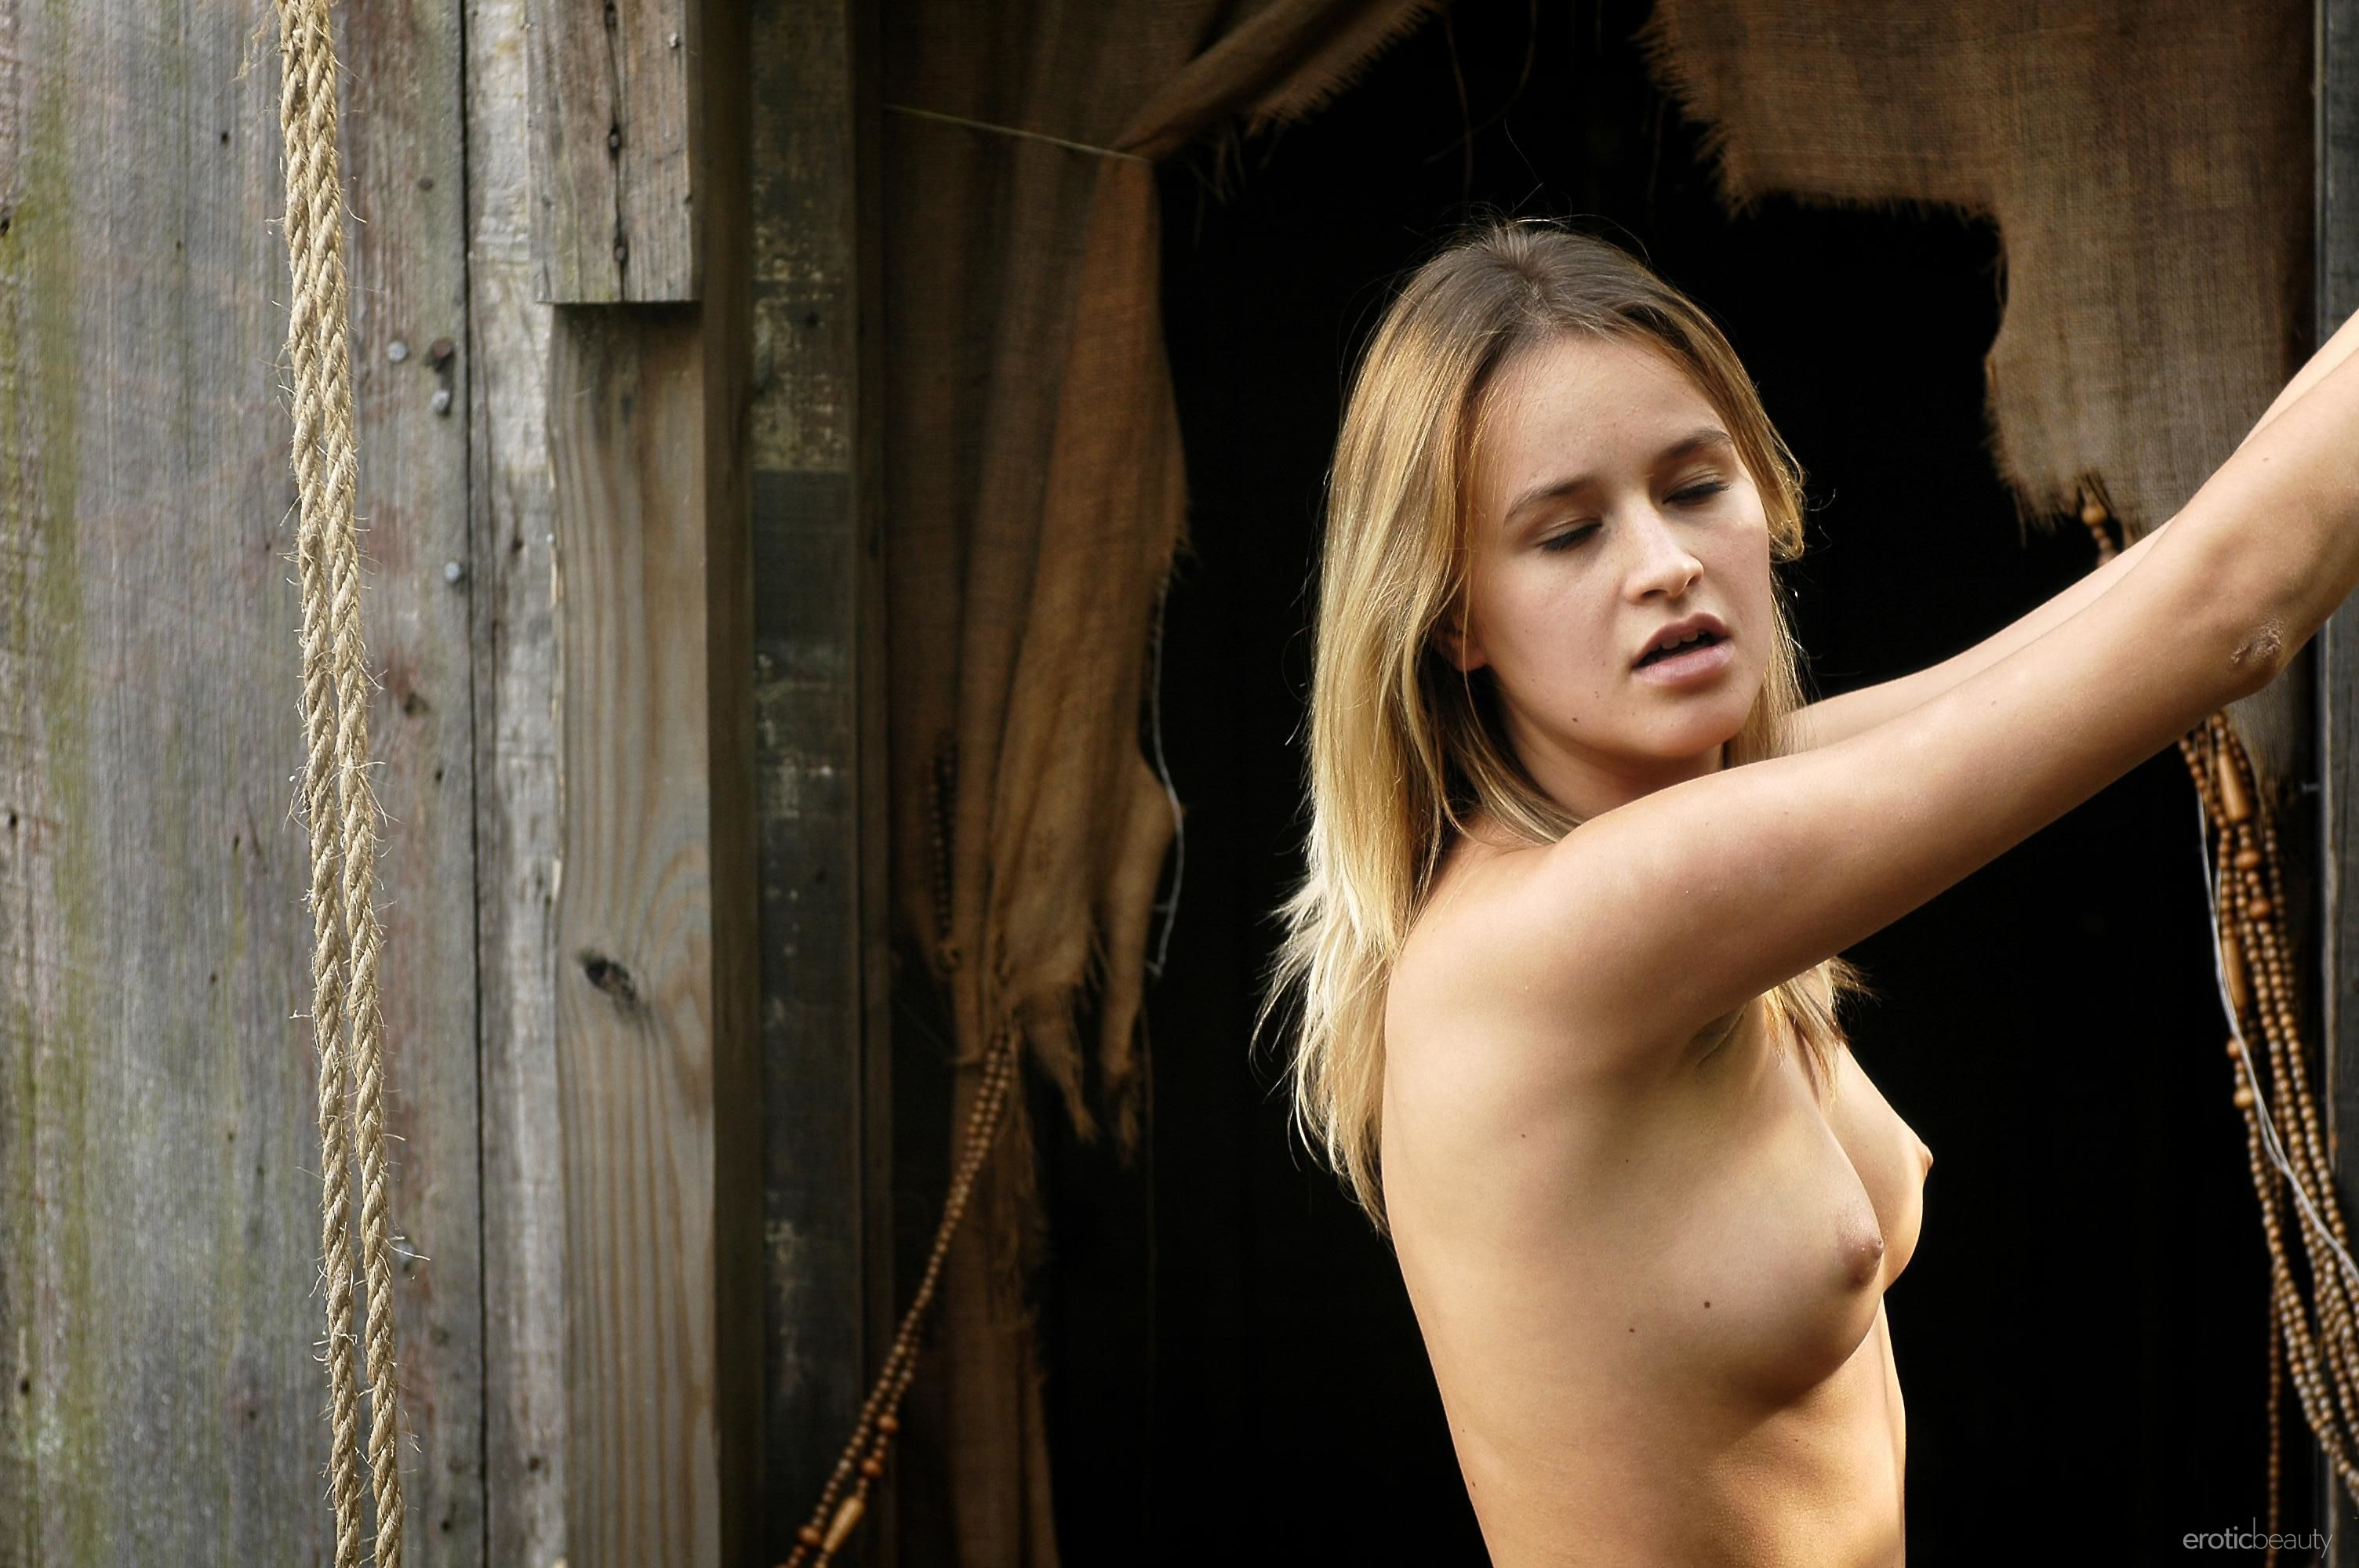 Julie hagerty naked